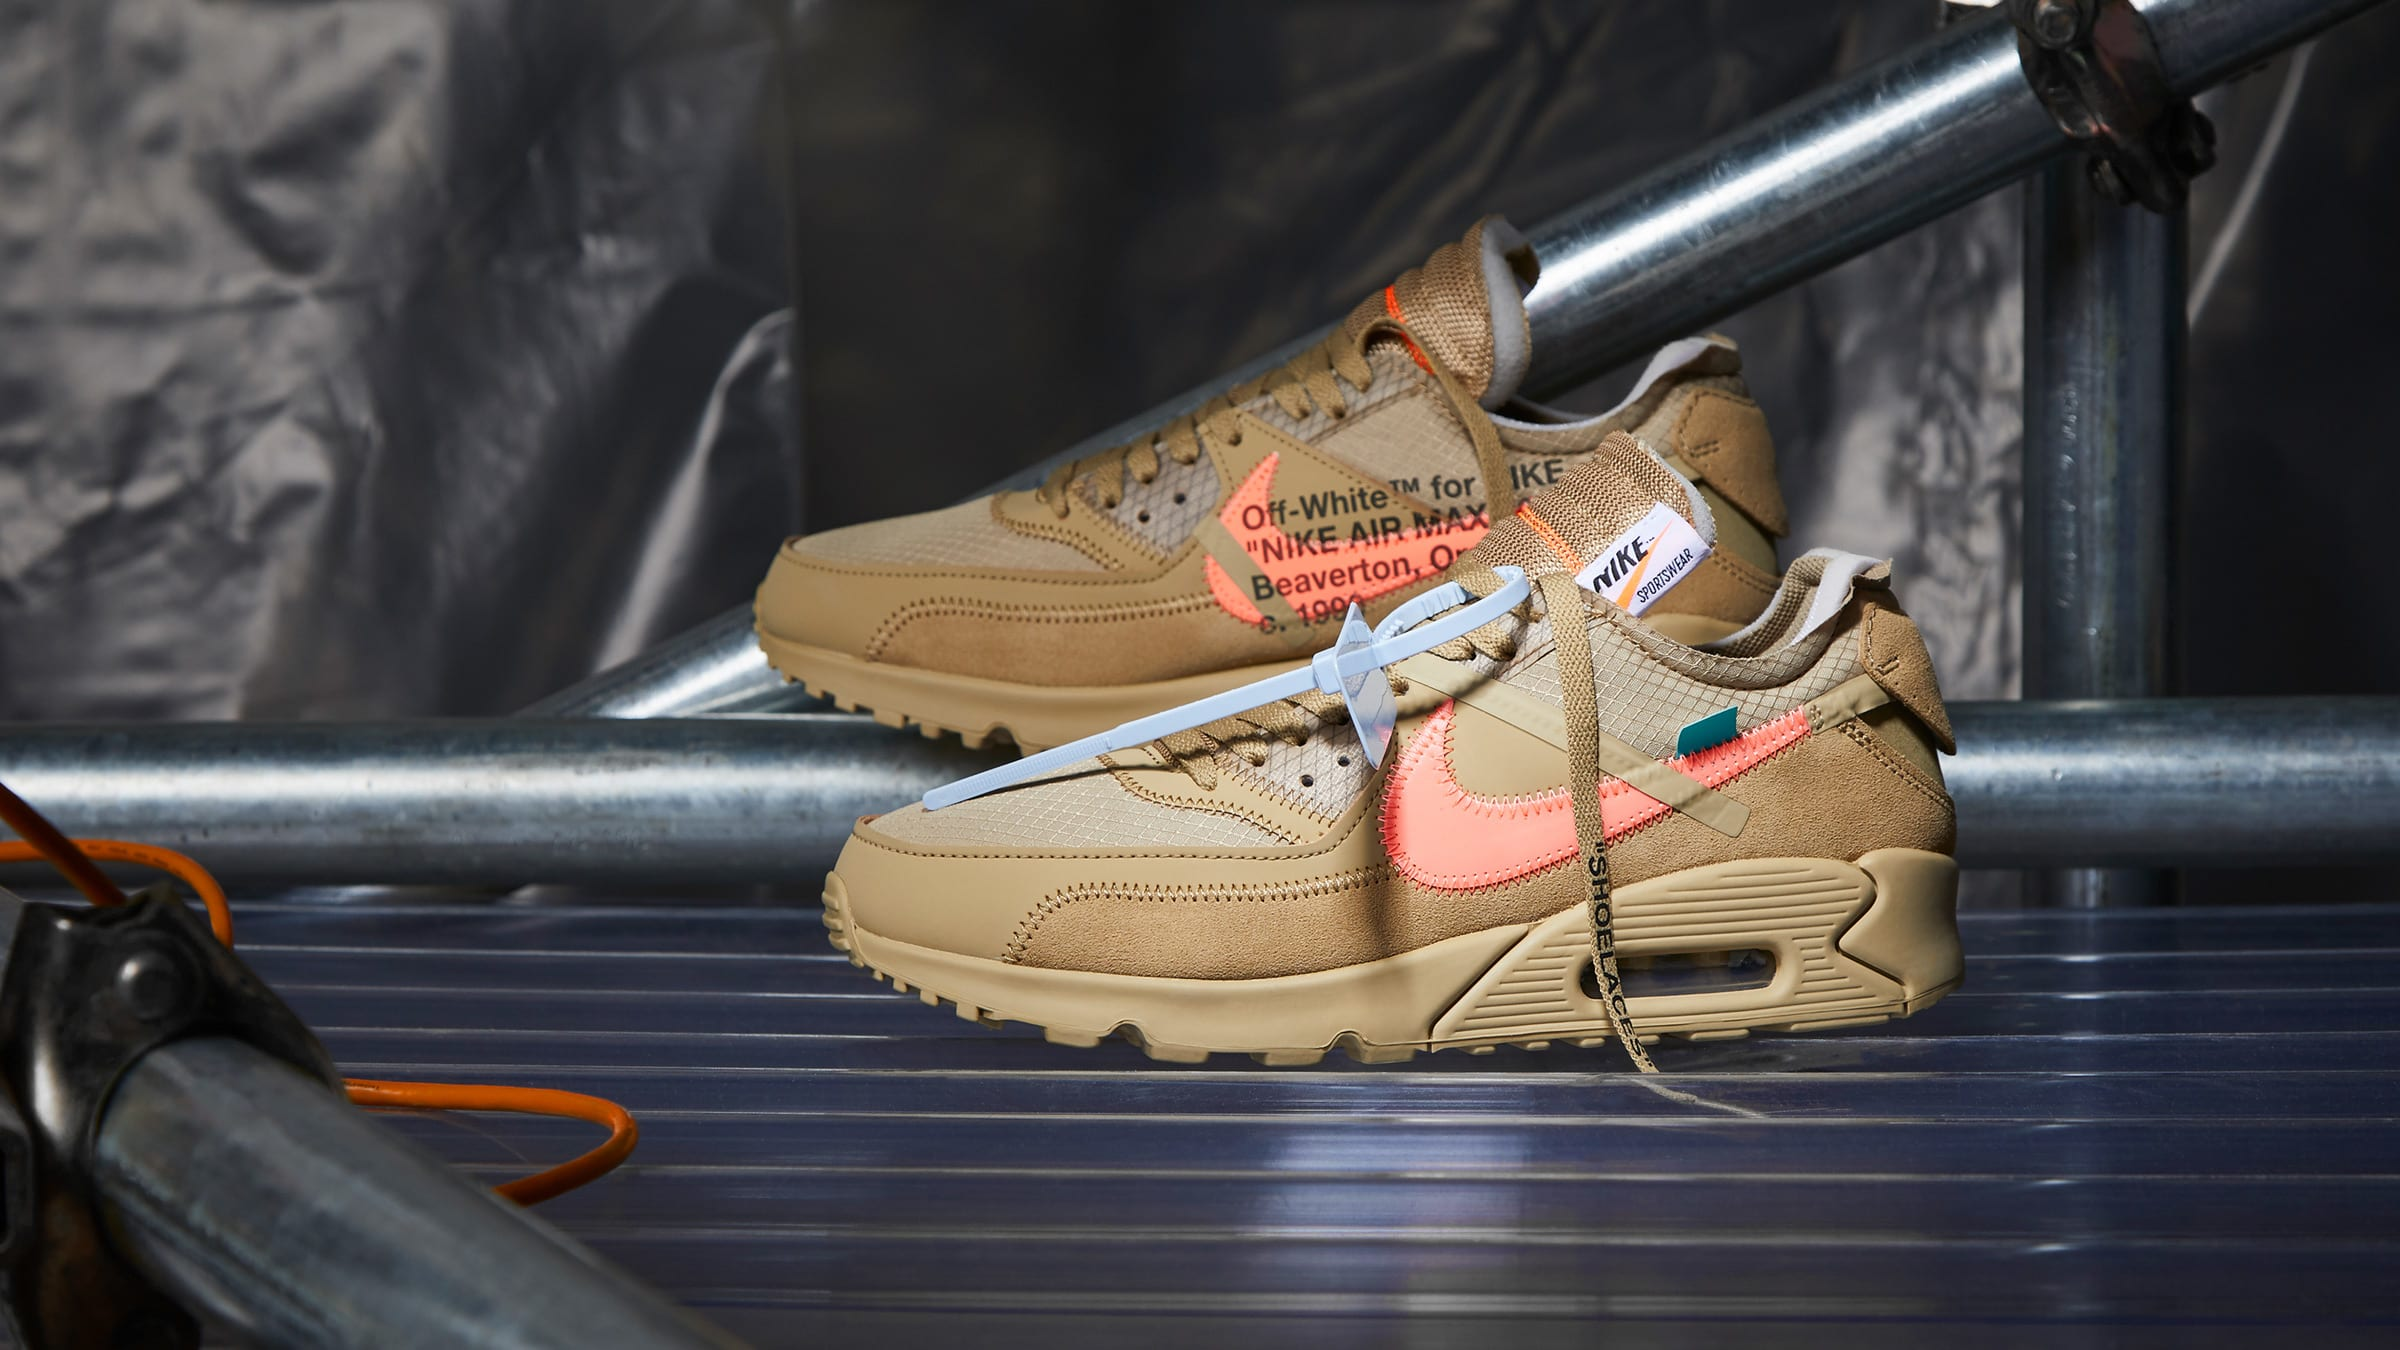 separation shoes 35703 cd253 OFF WHITE x Nike Air Max 90 Desert Ore & Black/White ...